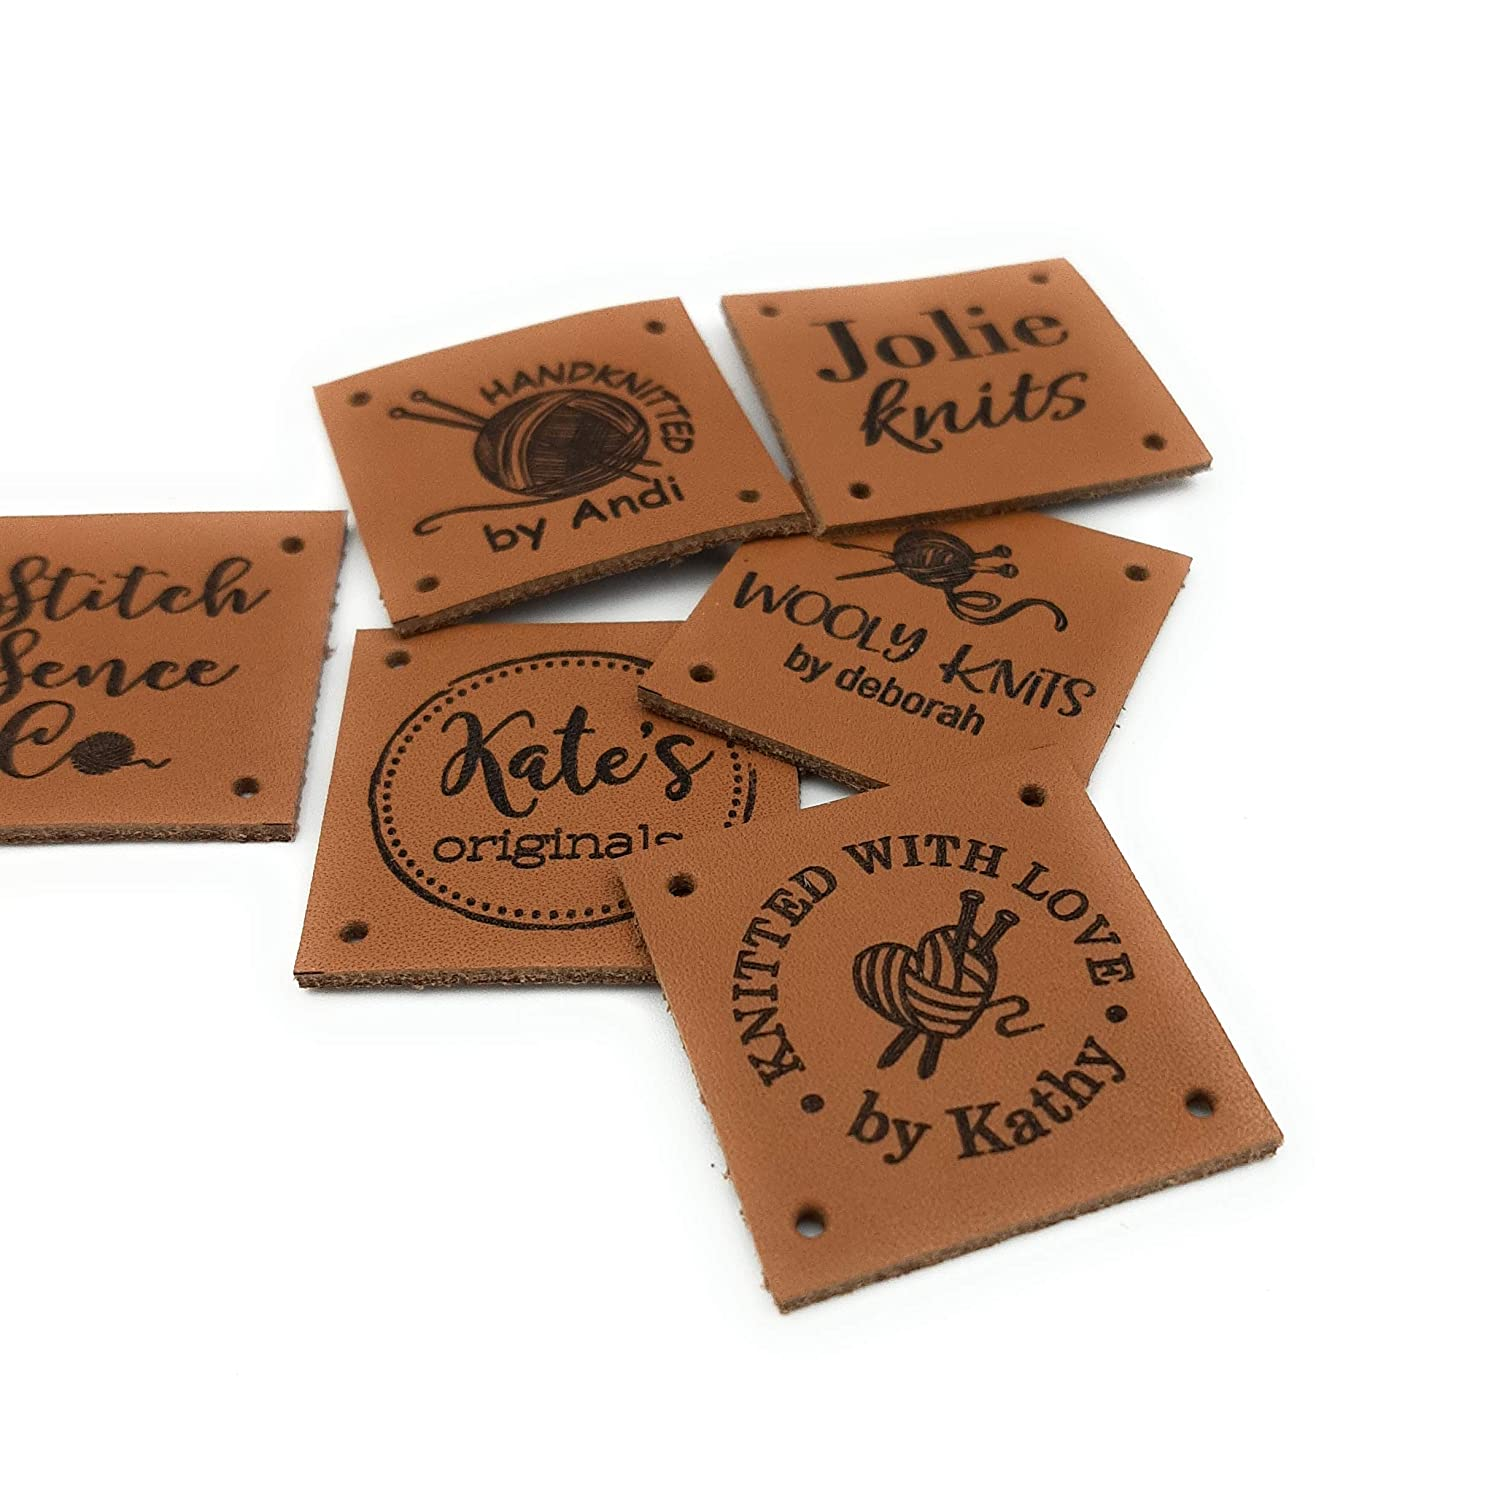 Personalised engraved wooden tags for knitted items personalized sew on labels clothing labels custom sew in labels